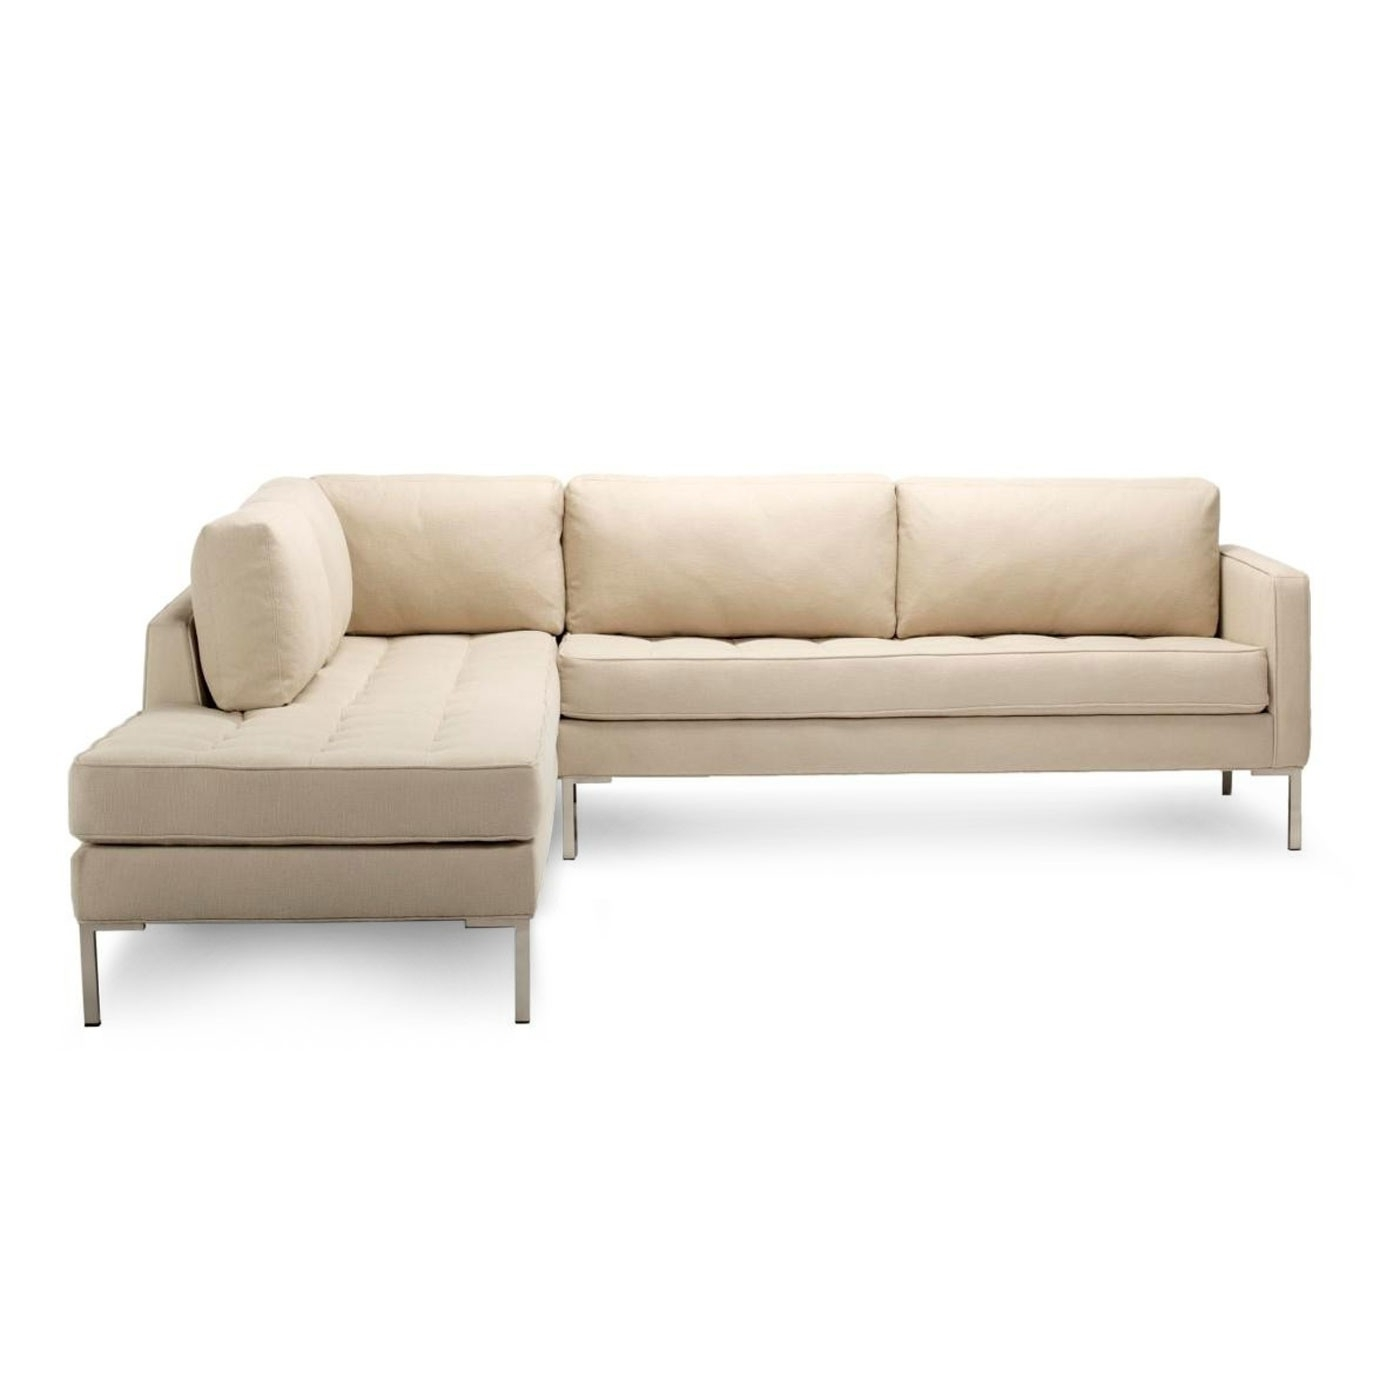 Jcpenney Sectional Sofas Pertaining To Well Liked Sofas And Sectionals – Cleanupflorida (View 8 of 20)